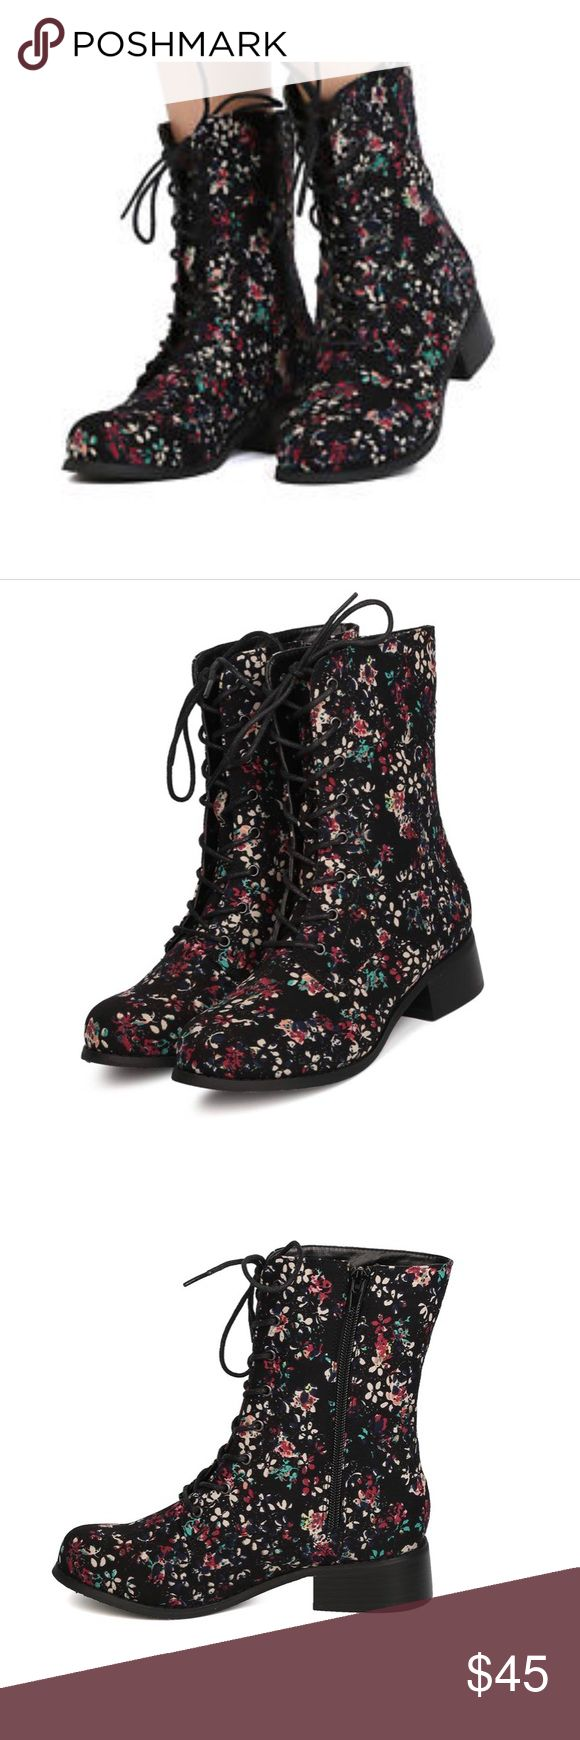 CANVAS FLORAL COMBAT BOOTS Really cute floral combat boots!! Man made sole and upper. These are so cute! Lace-up!! Wild Diva Shoes Lace Up Boots